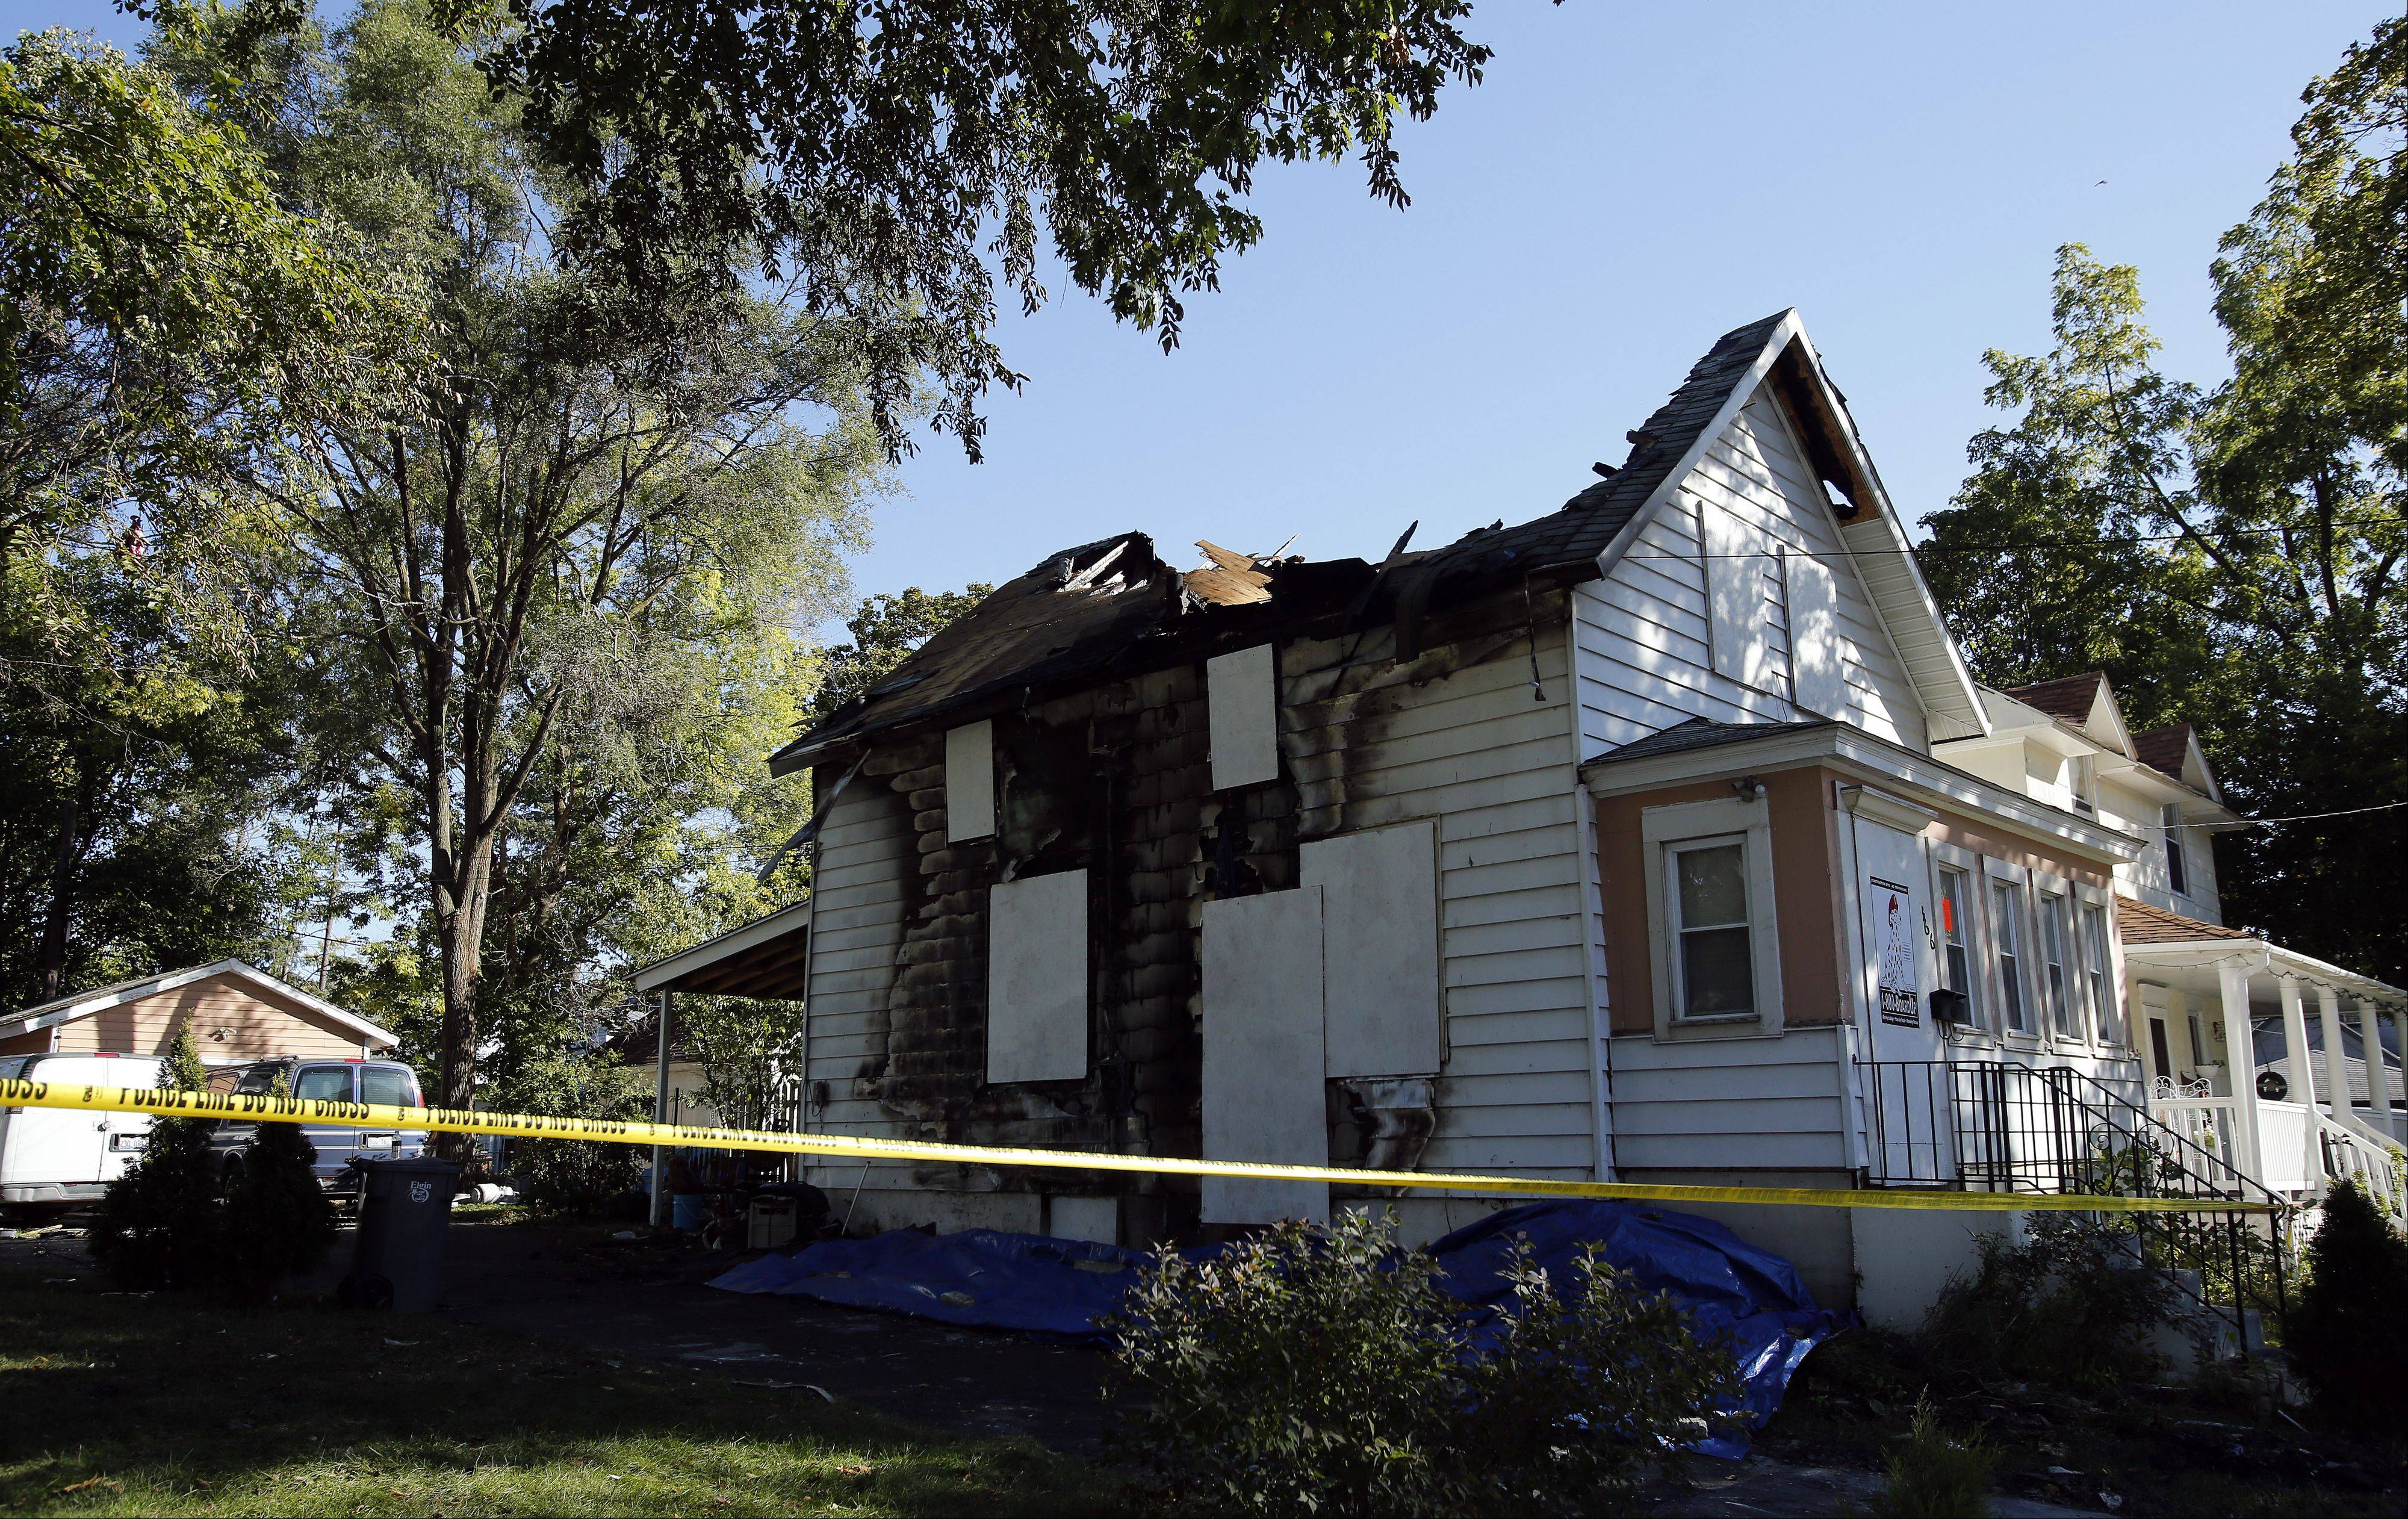 A Tuesday evening fire damaged a house in the 300 block of May Street in Elgin.